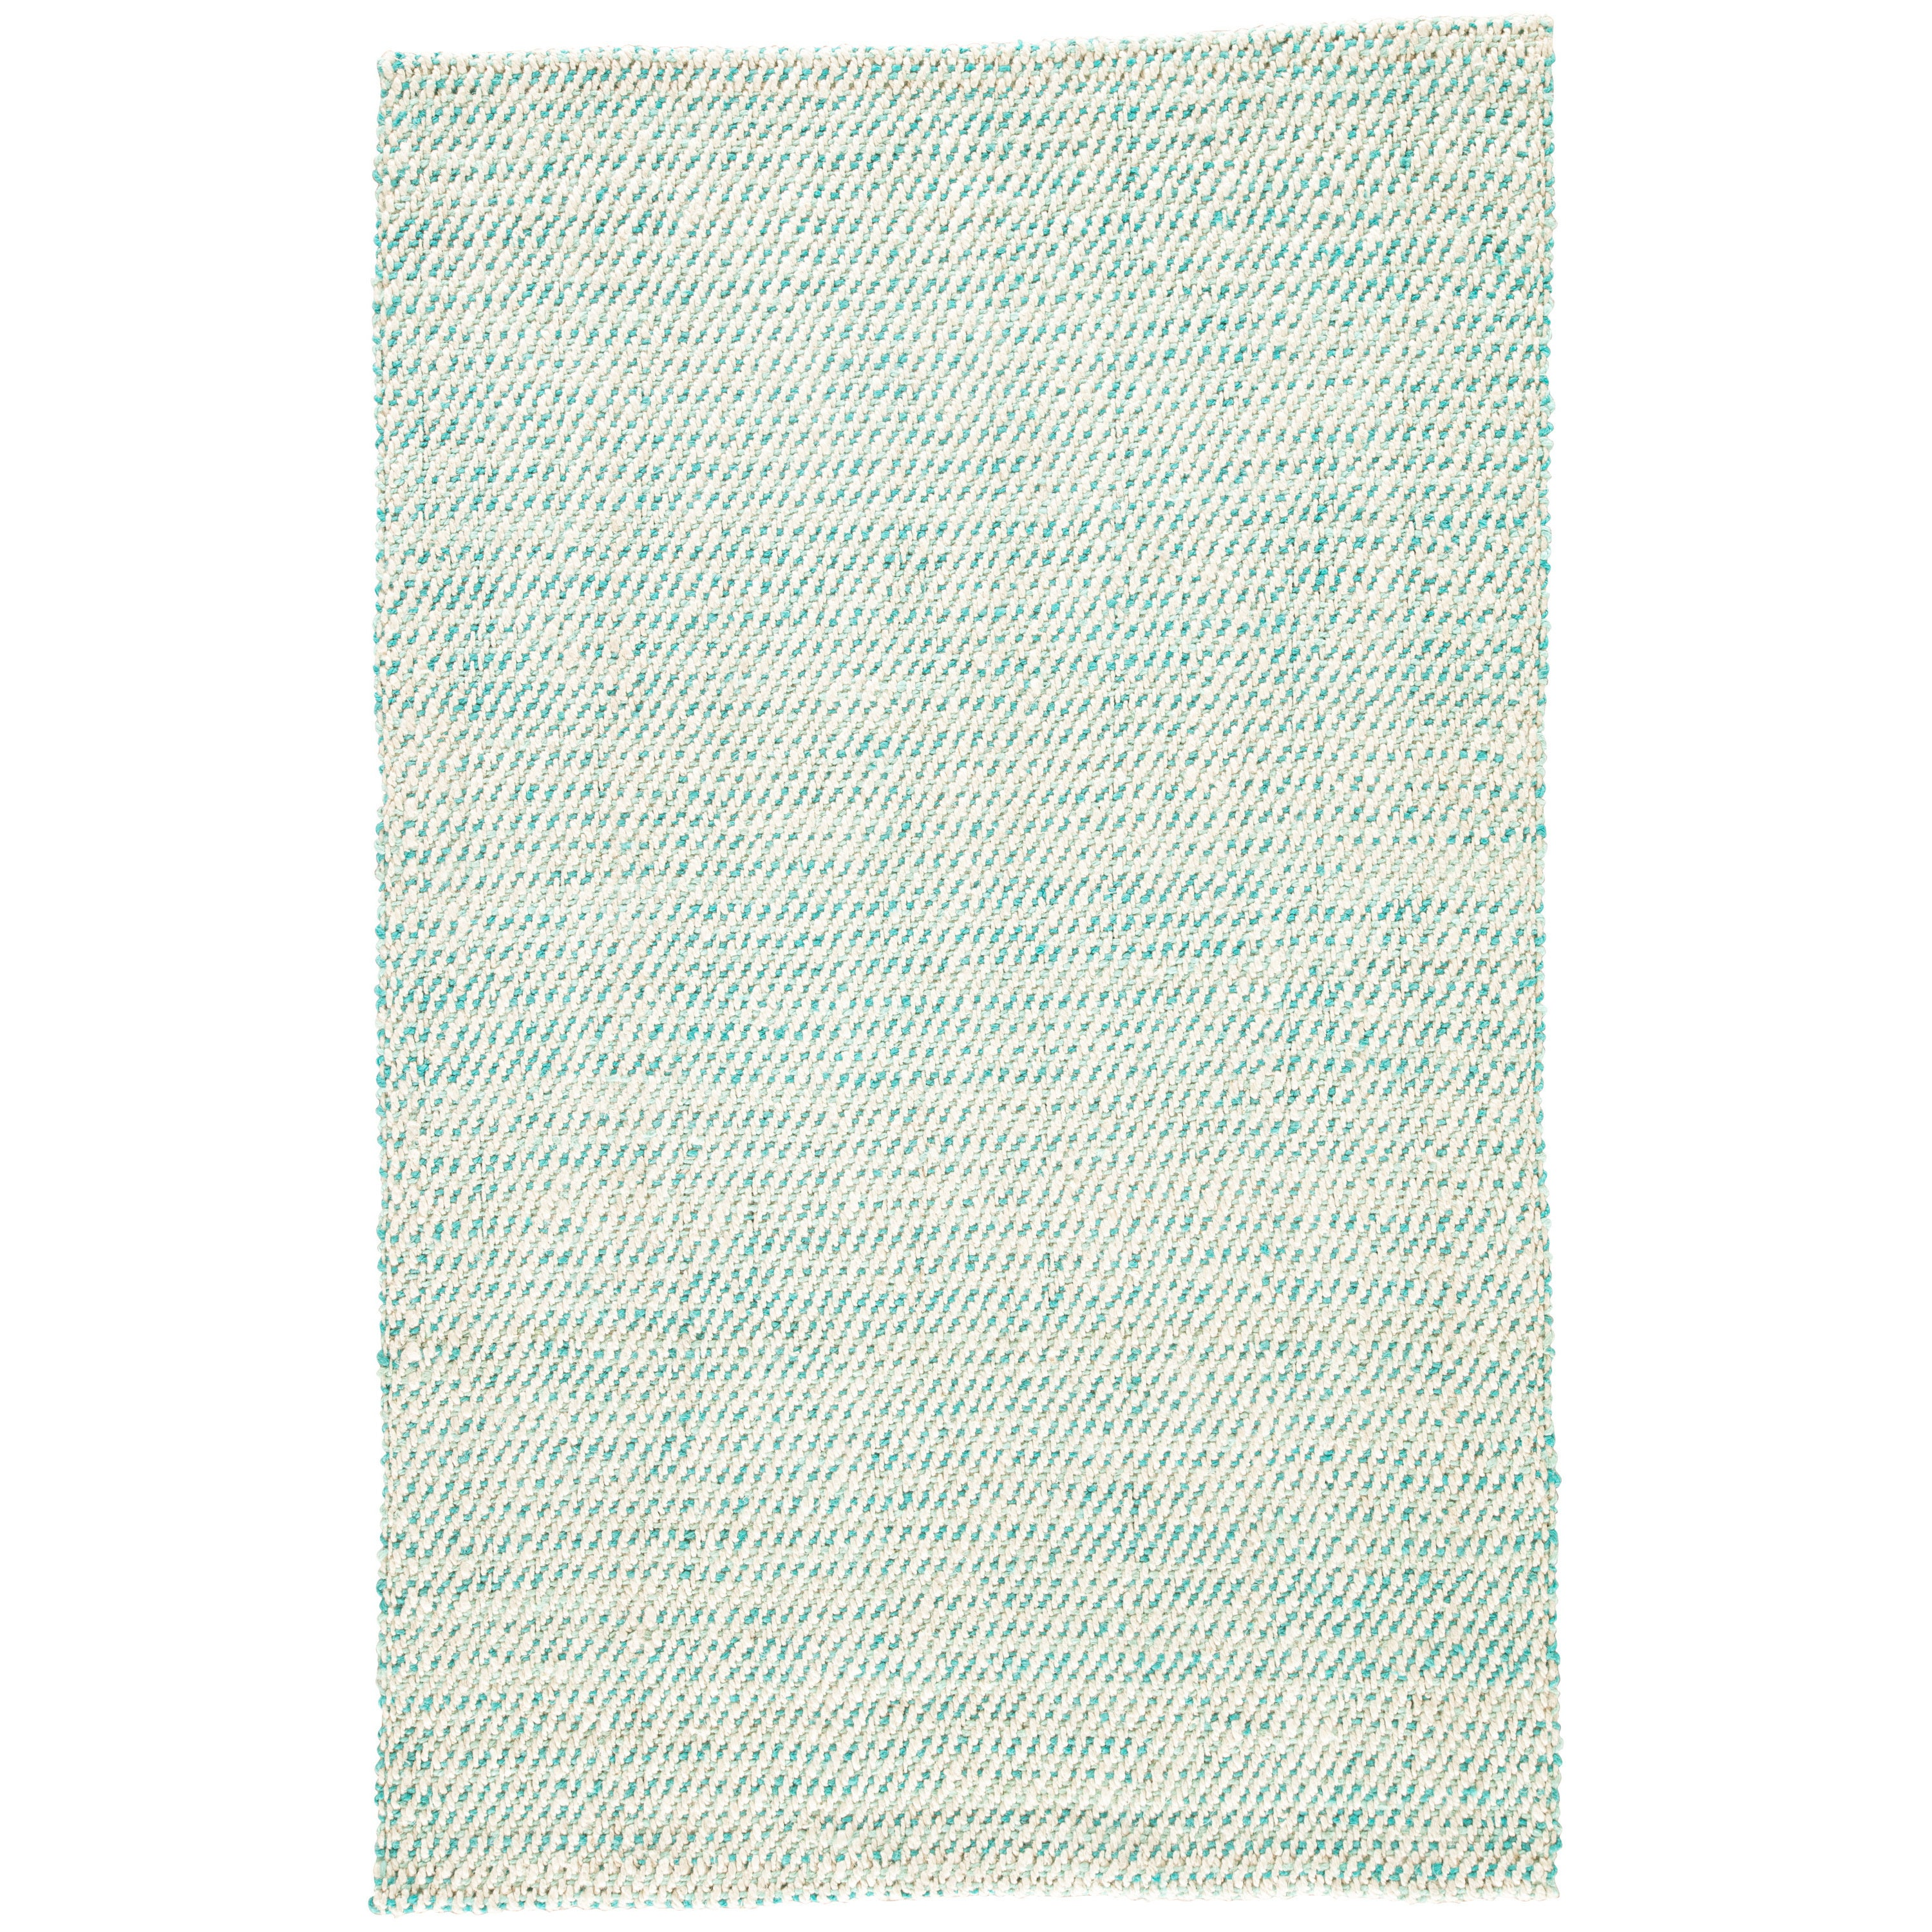 Havenside Home Bayview Natural Solid White/ Aqua Area Rug (2' x 3')